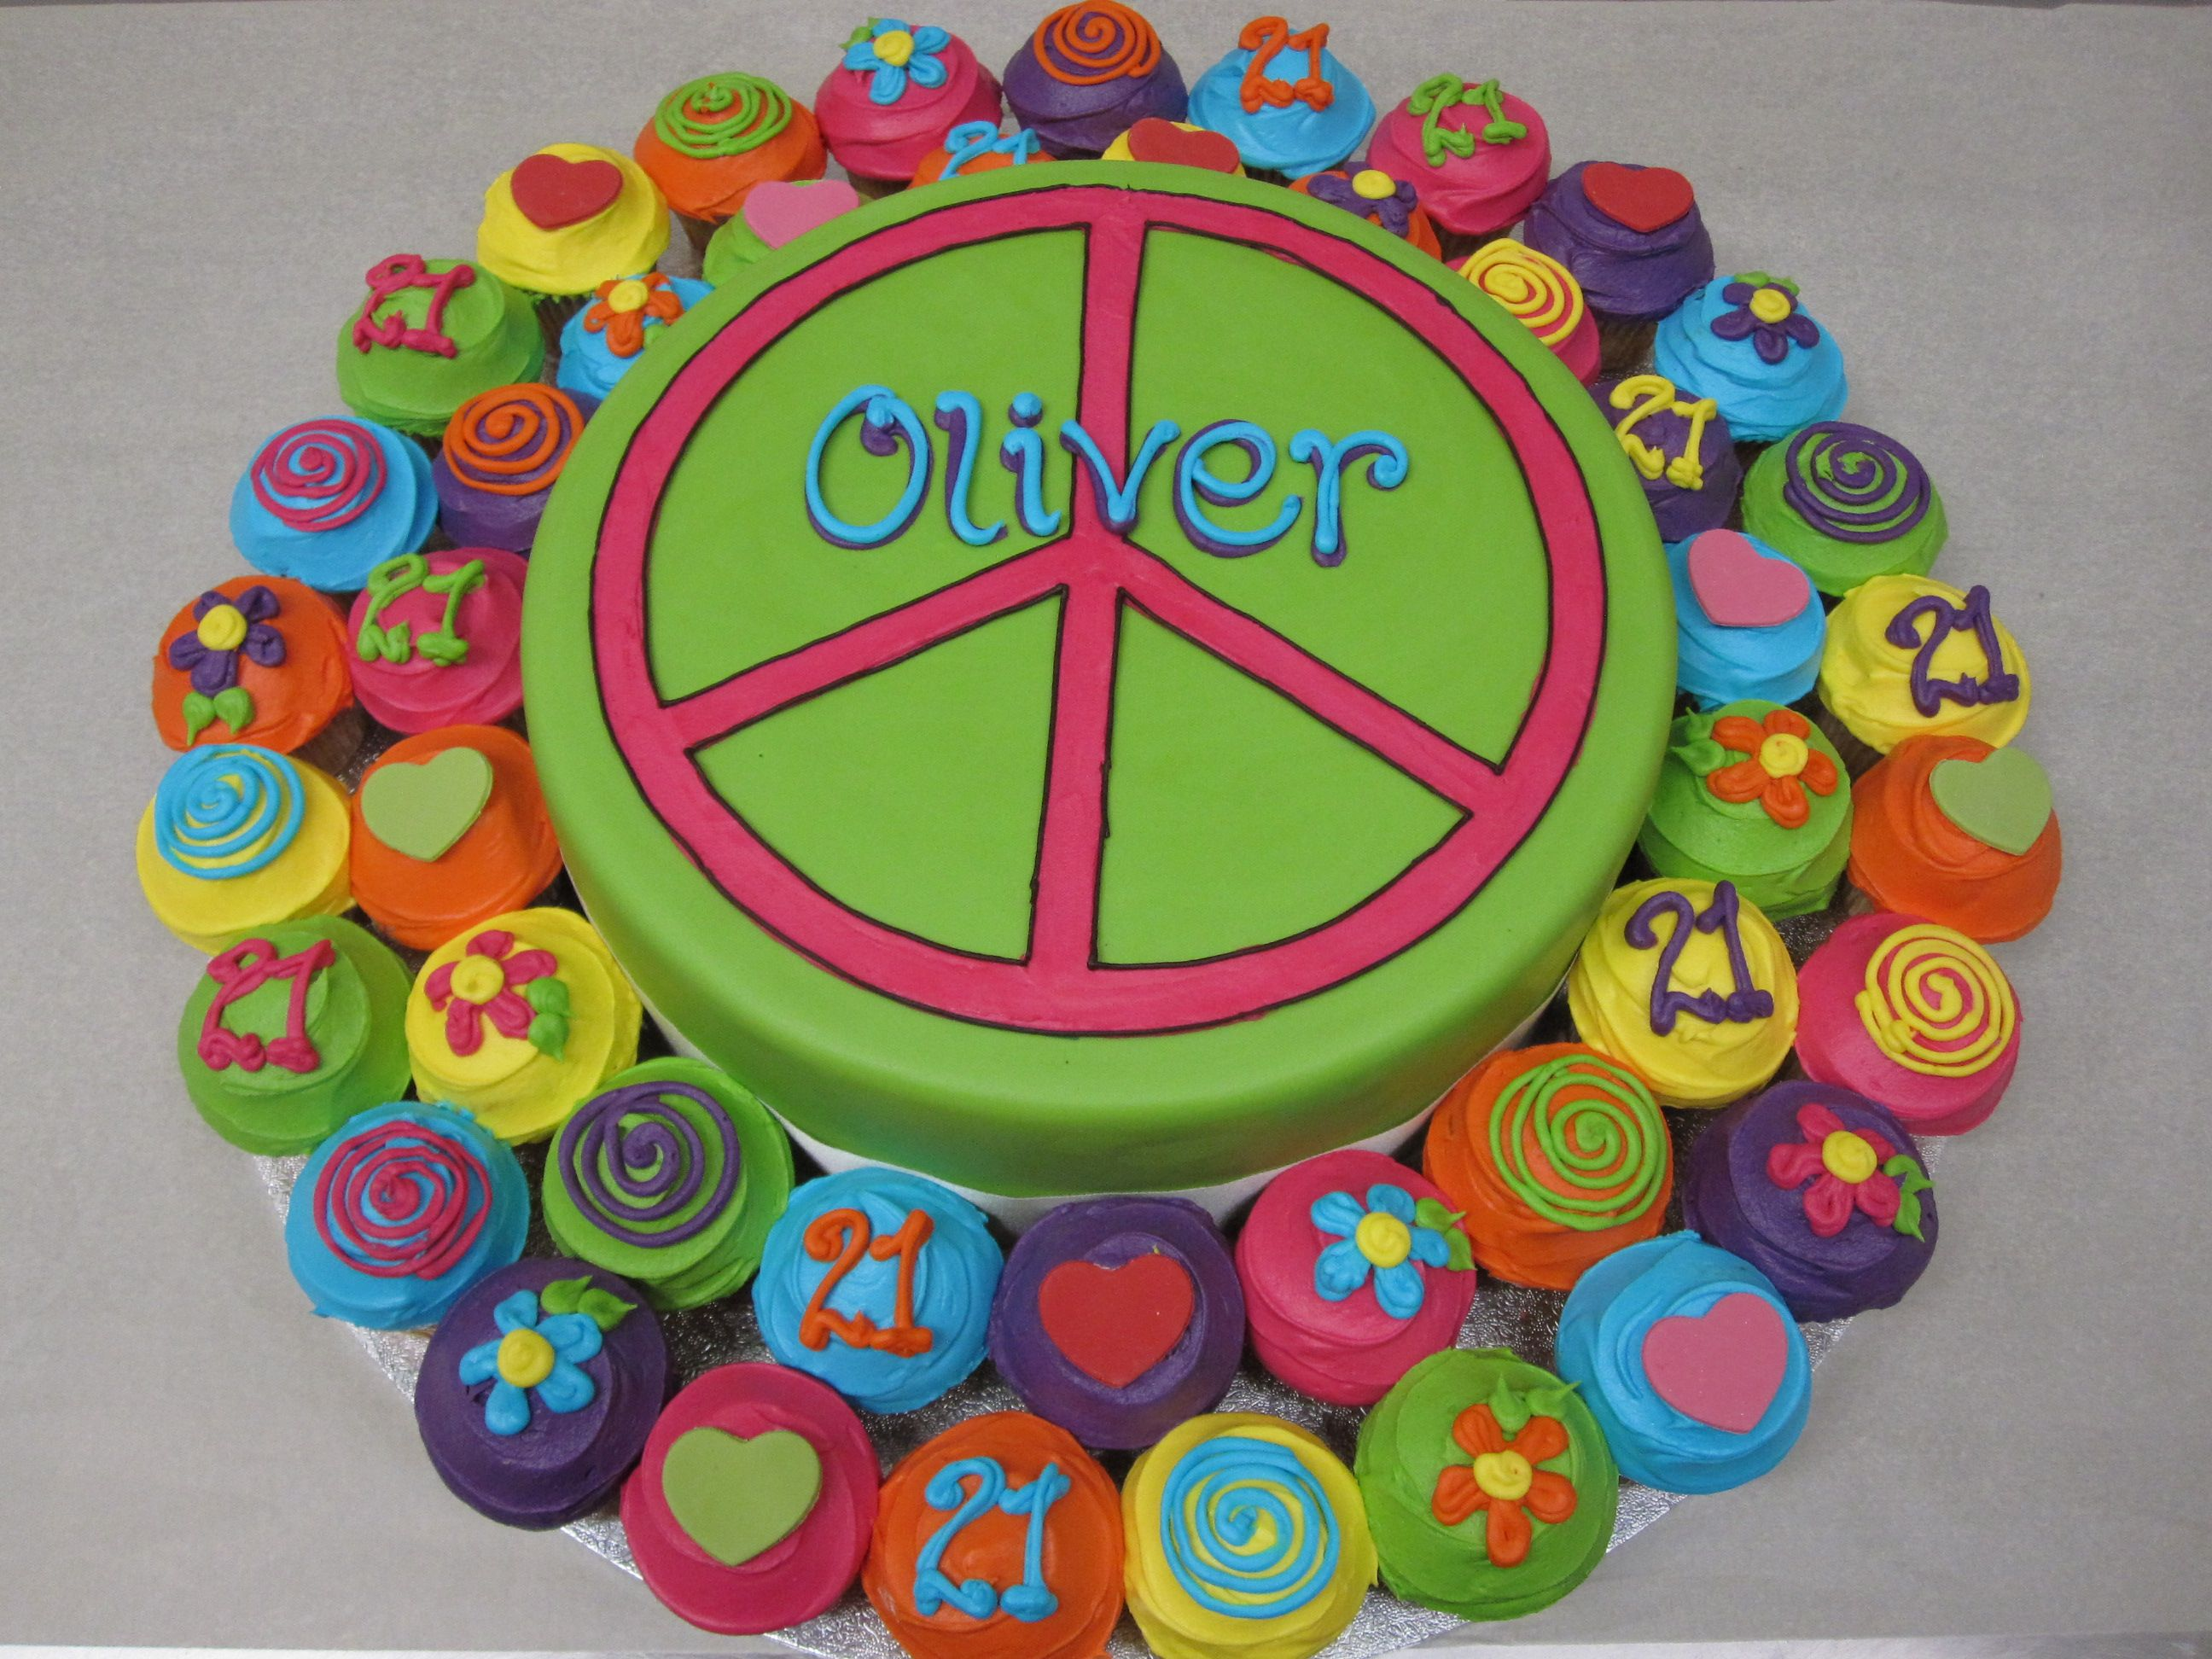 Flower Power Hippie Style Arrangement With Cutting Cake In The Middle And Mini Cupcakes Around